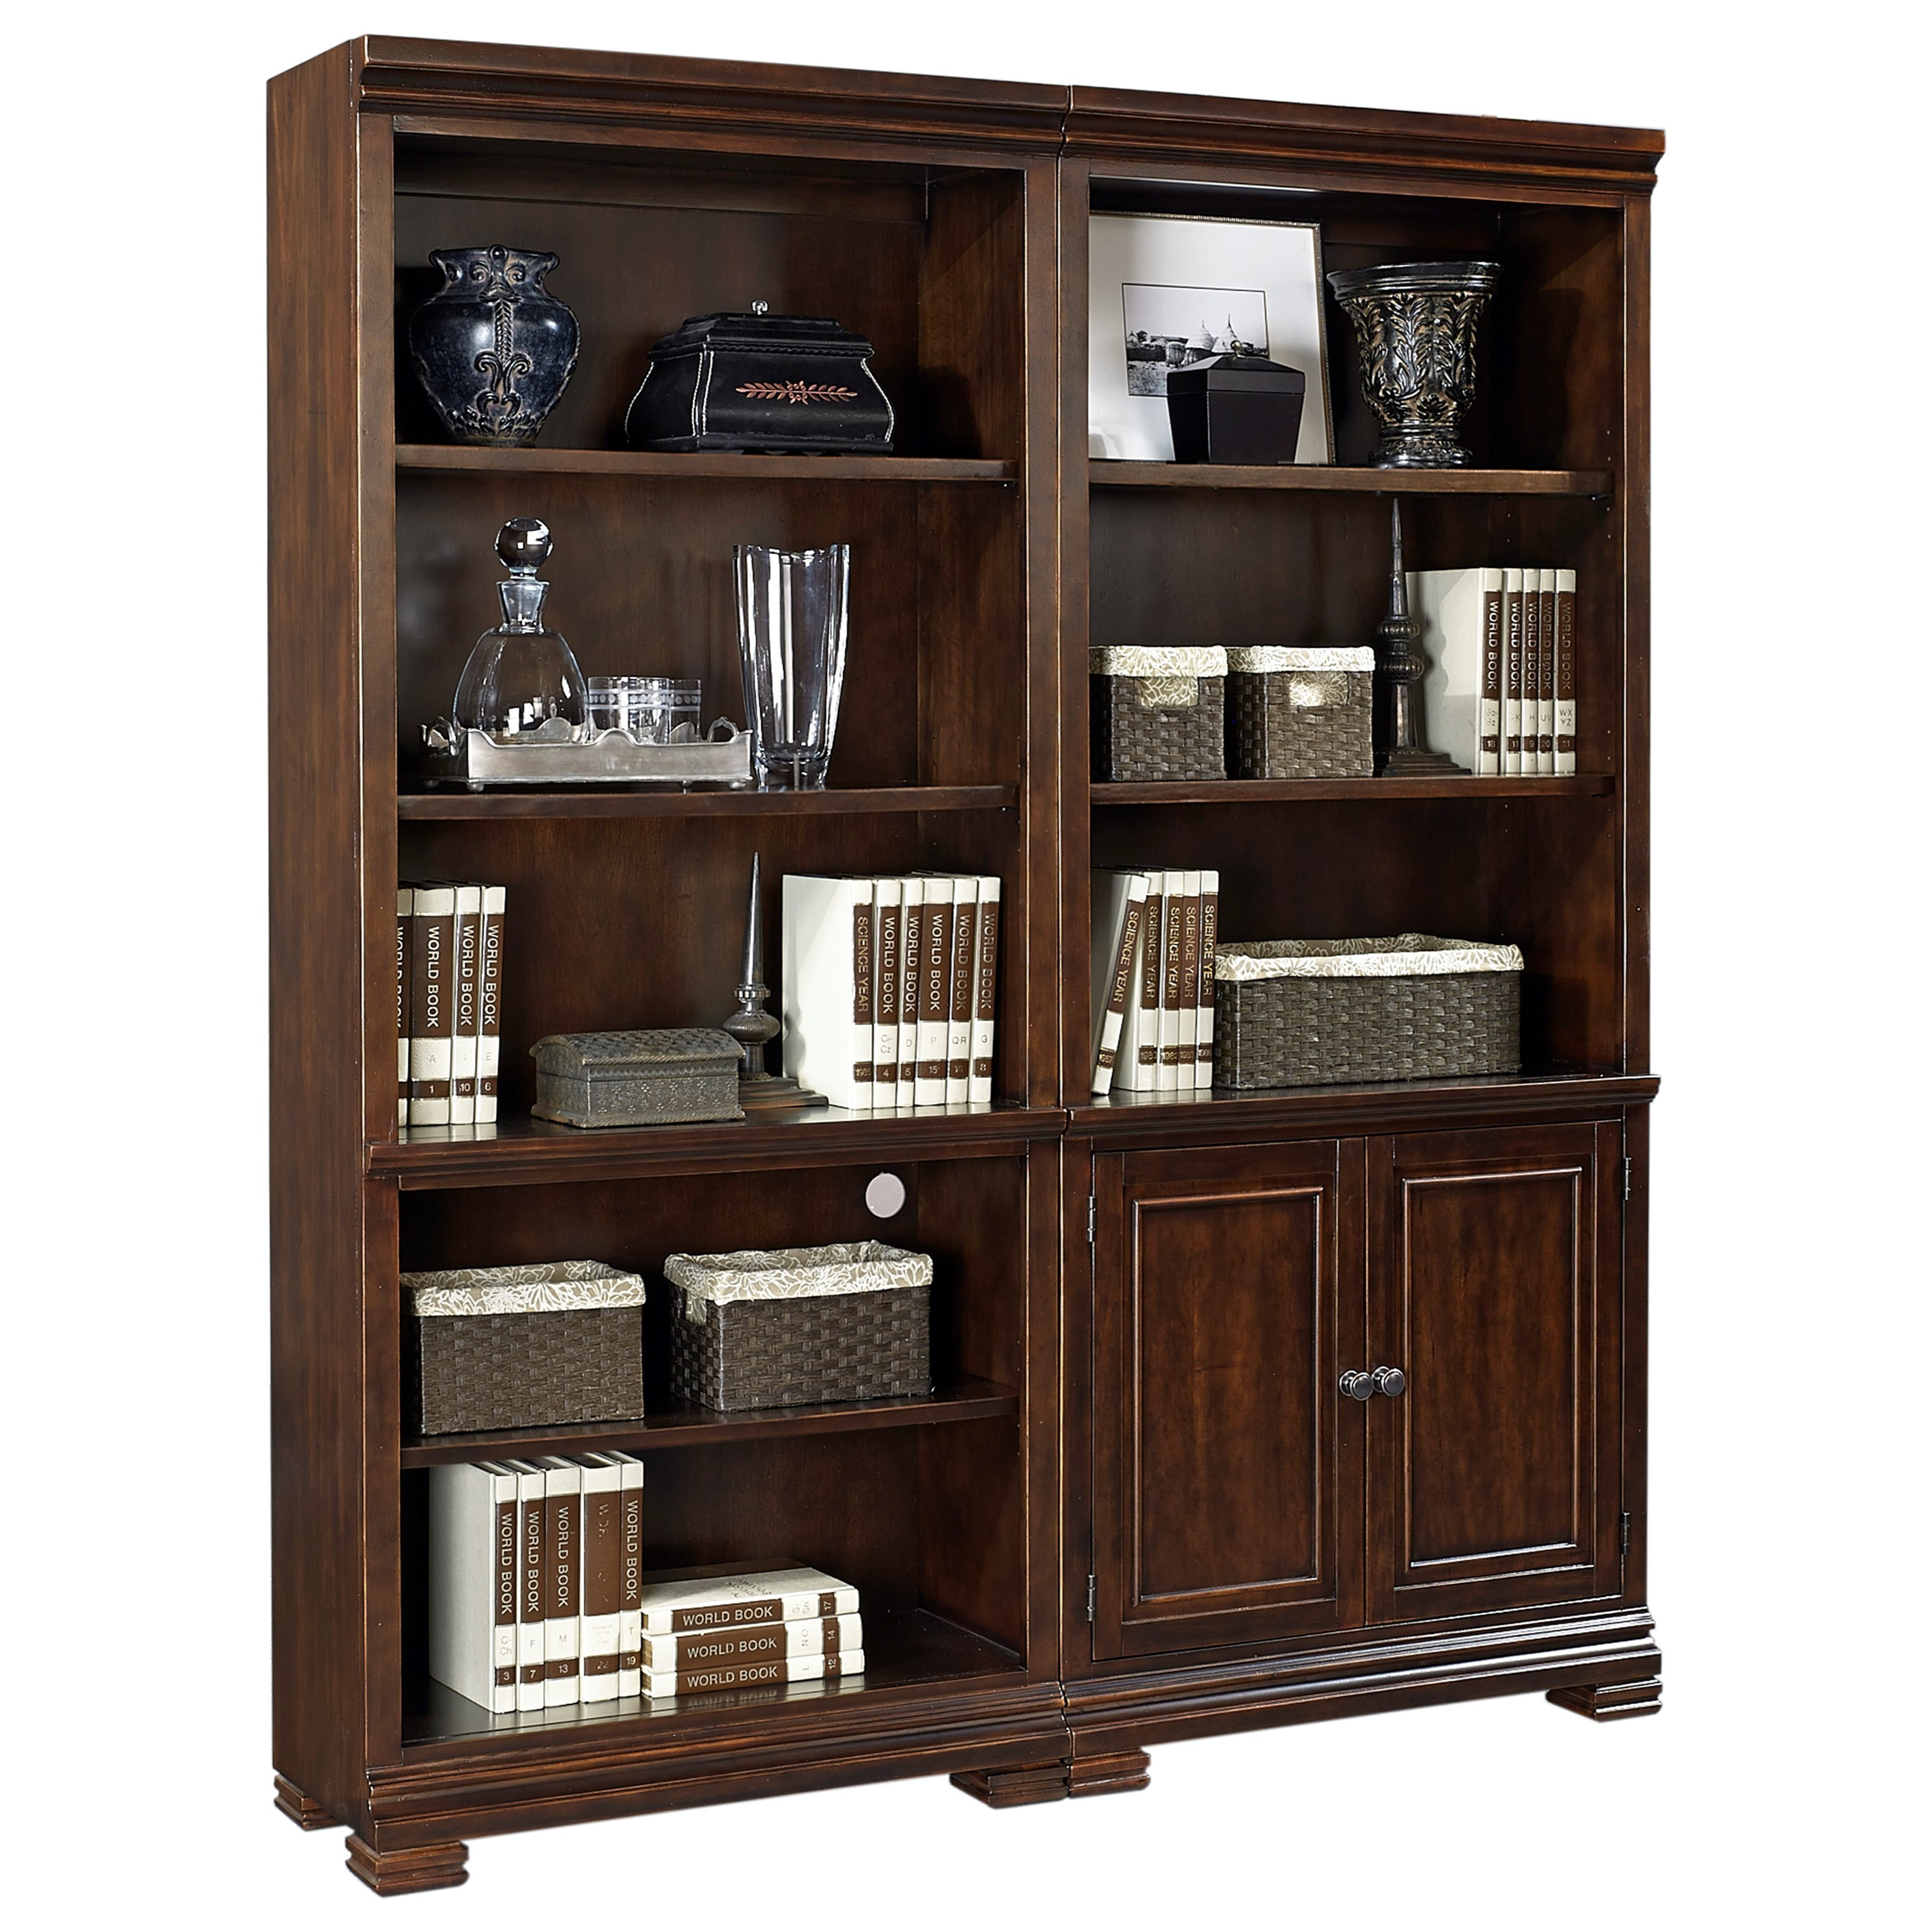 Bookcase Wall with Cord Access